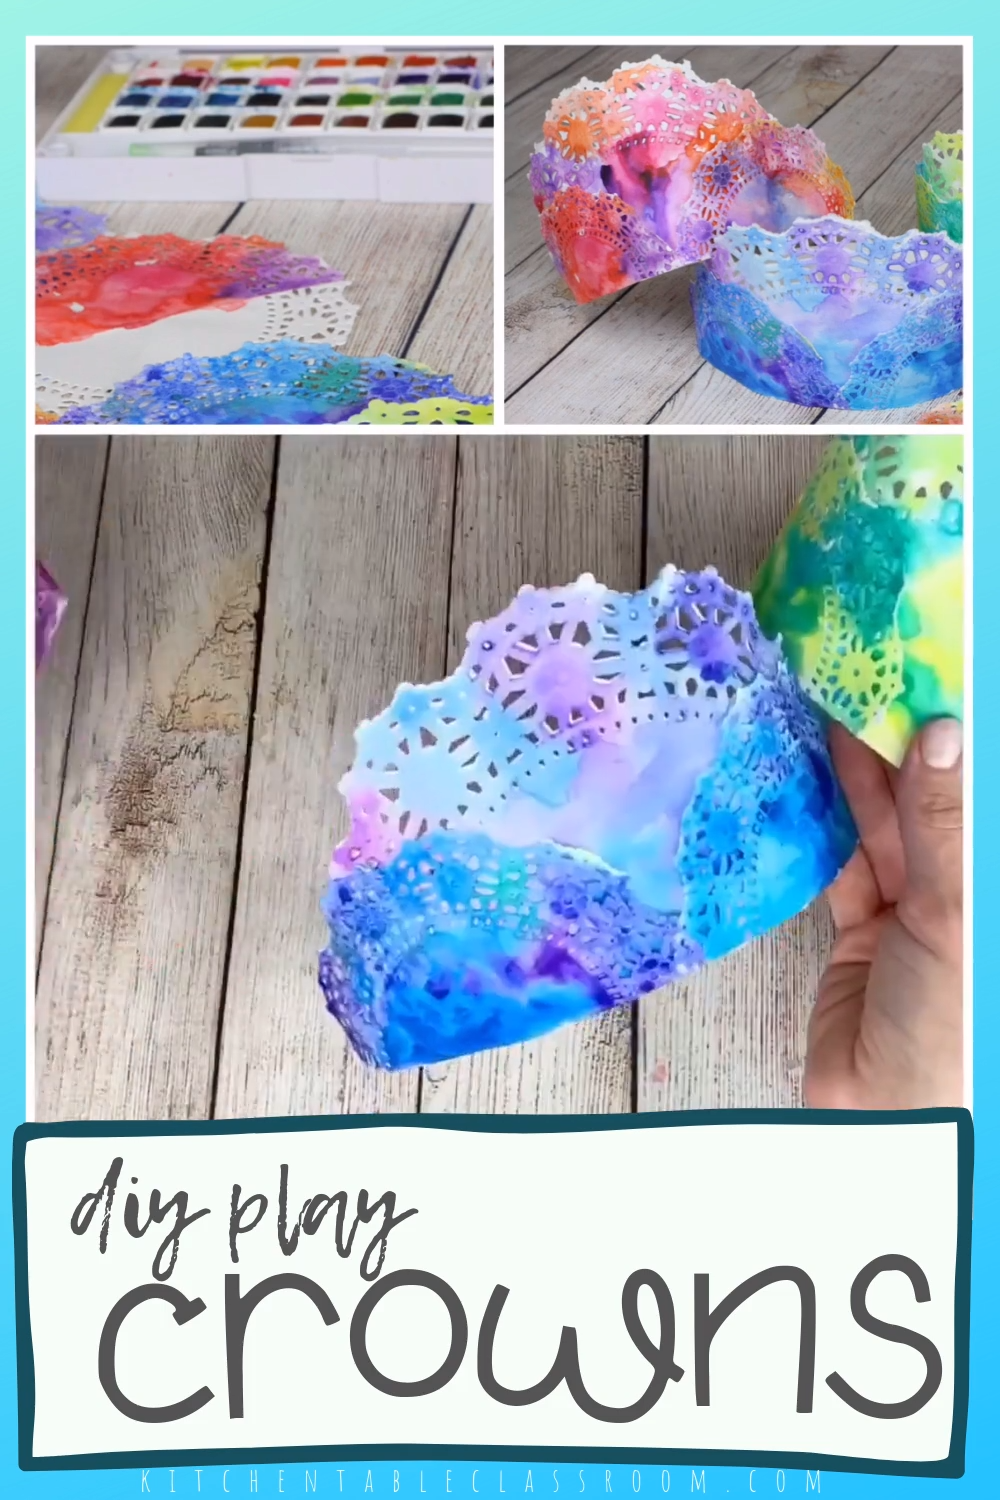 DIY Play Crowns